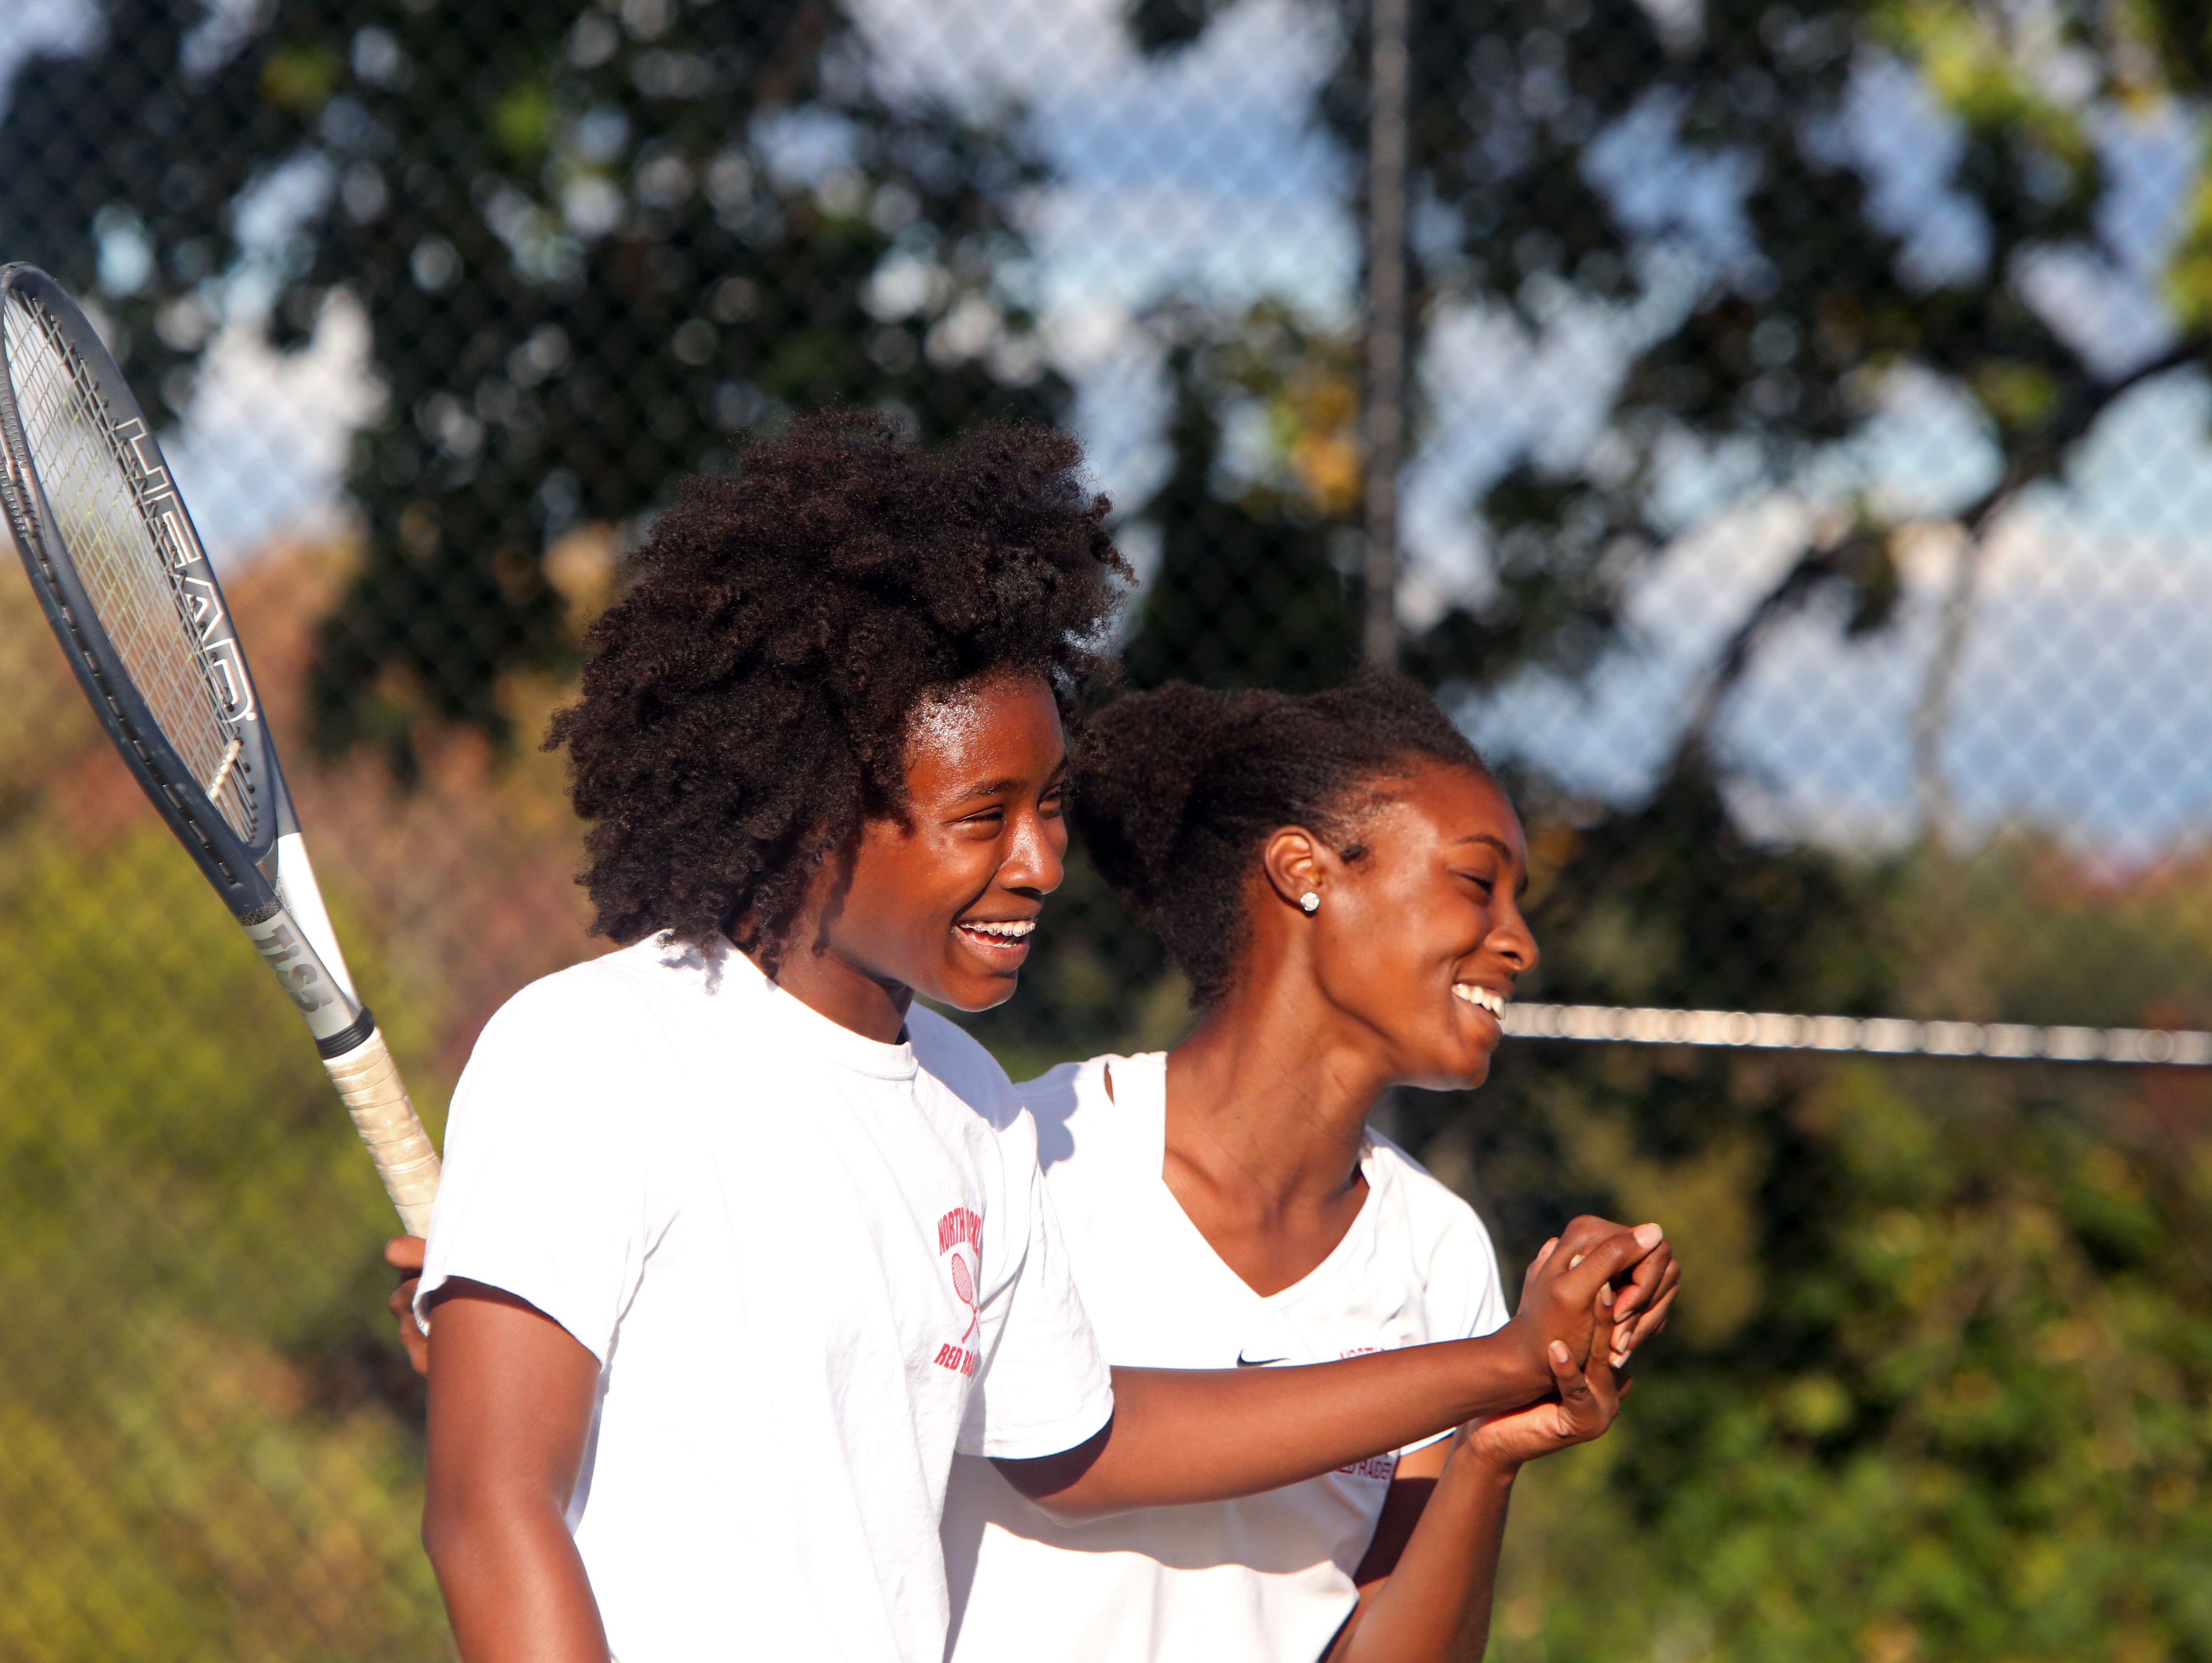 North Rockland's Akemi Dwyer, left, and sister Anika Dwyer celebrate their win in the doubles finals against Ursuline's Laina Campos and Vanessa Ciano in the Conference II tennis tournament, Oct. 16, 2015 at White Plains High School.